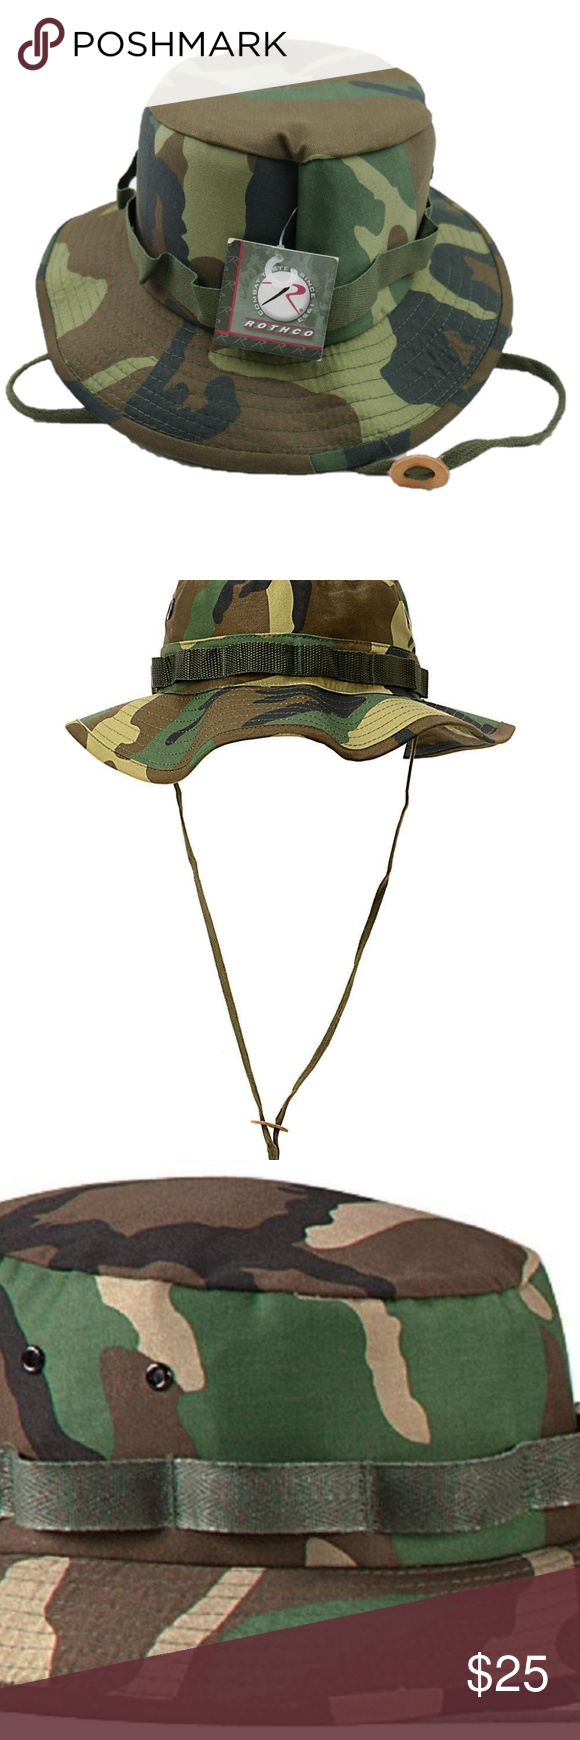 3183f34eec1ba Rothco Xl Woodland Camouflage Military Boonie Hat Rothco Xl Woodland  Camouflage Military Boonie Bucket Camping Hunting